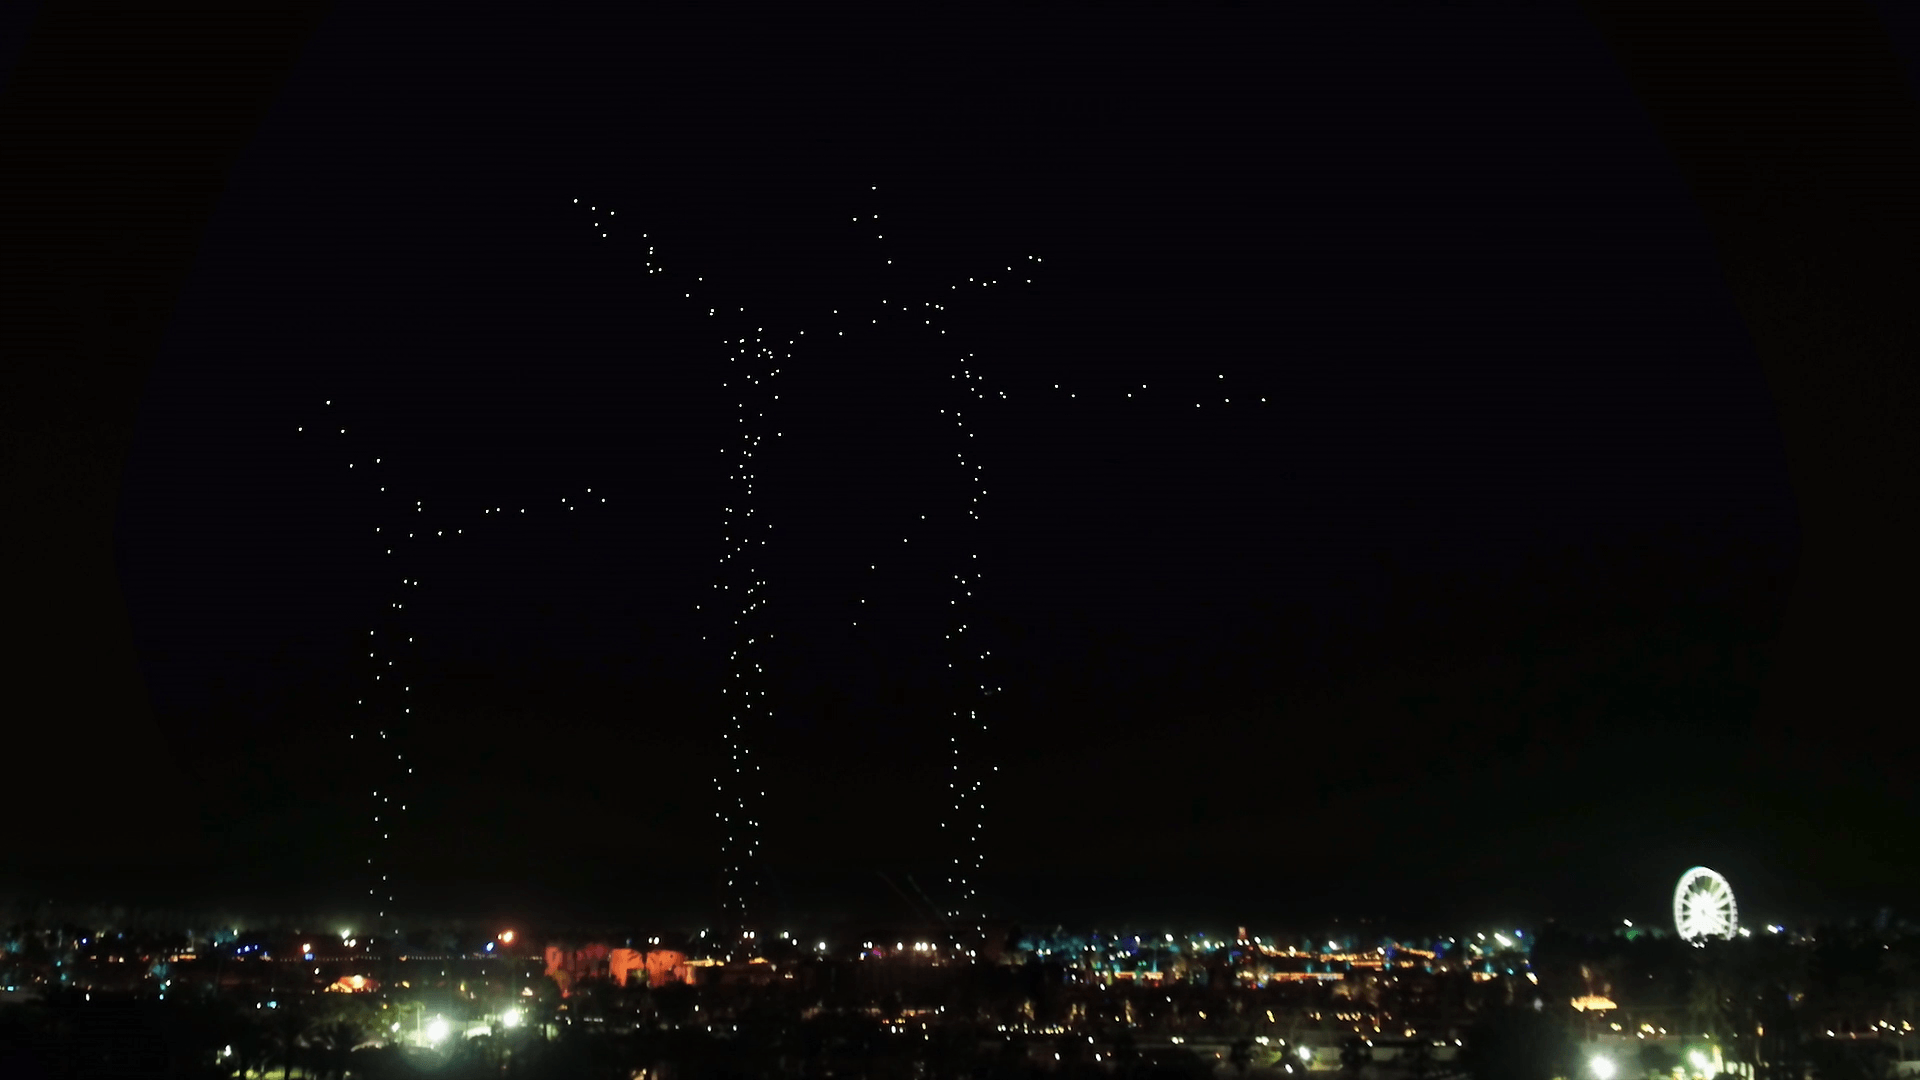 Coachella drones take over the music festival with Intel's newest light show